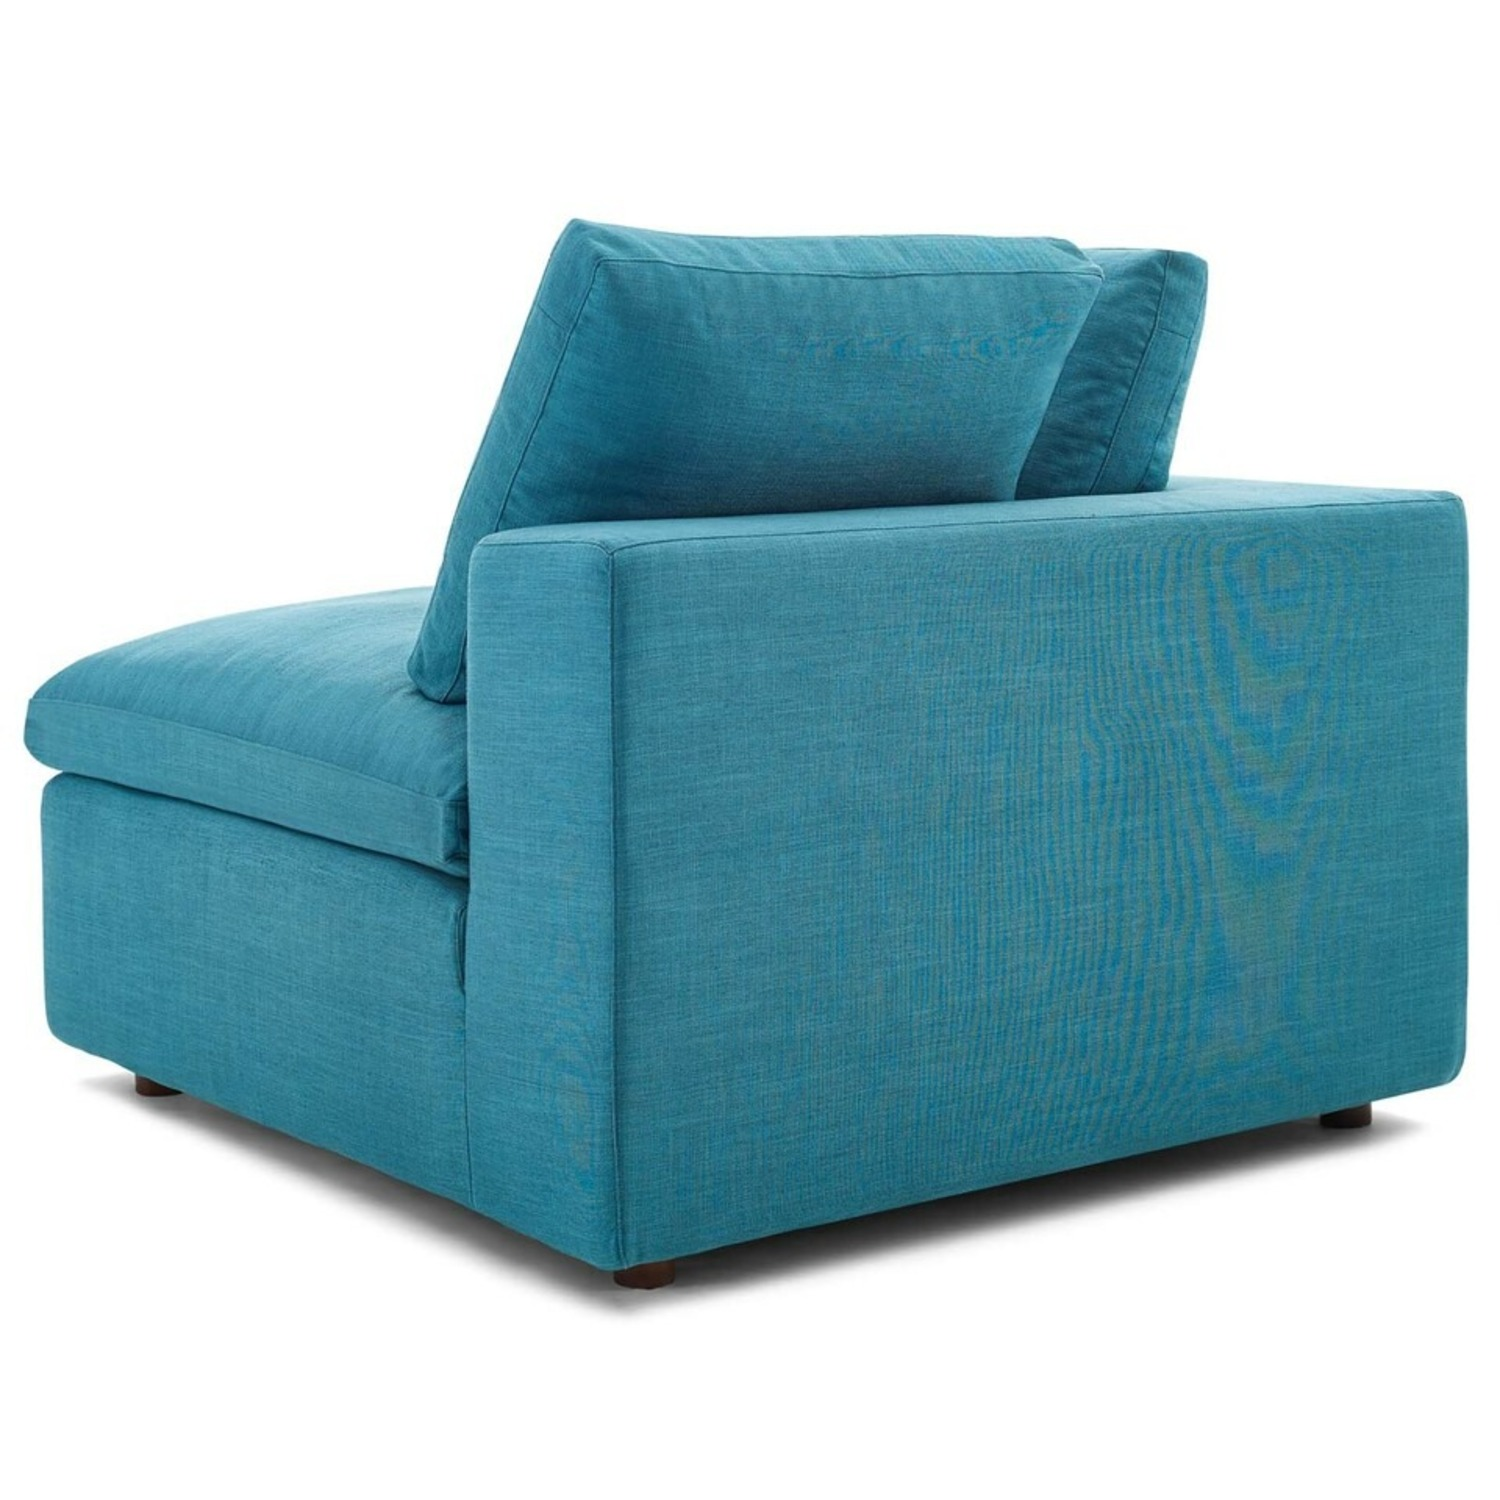 4-Piece Sectional In Teal Polyester & Linen Fabric - image-6